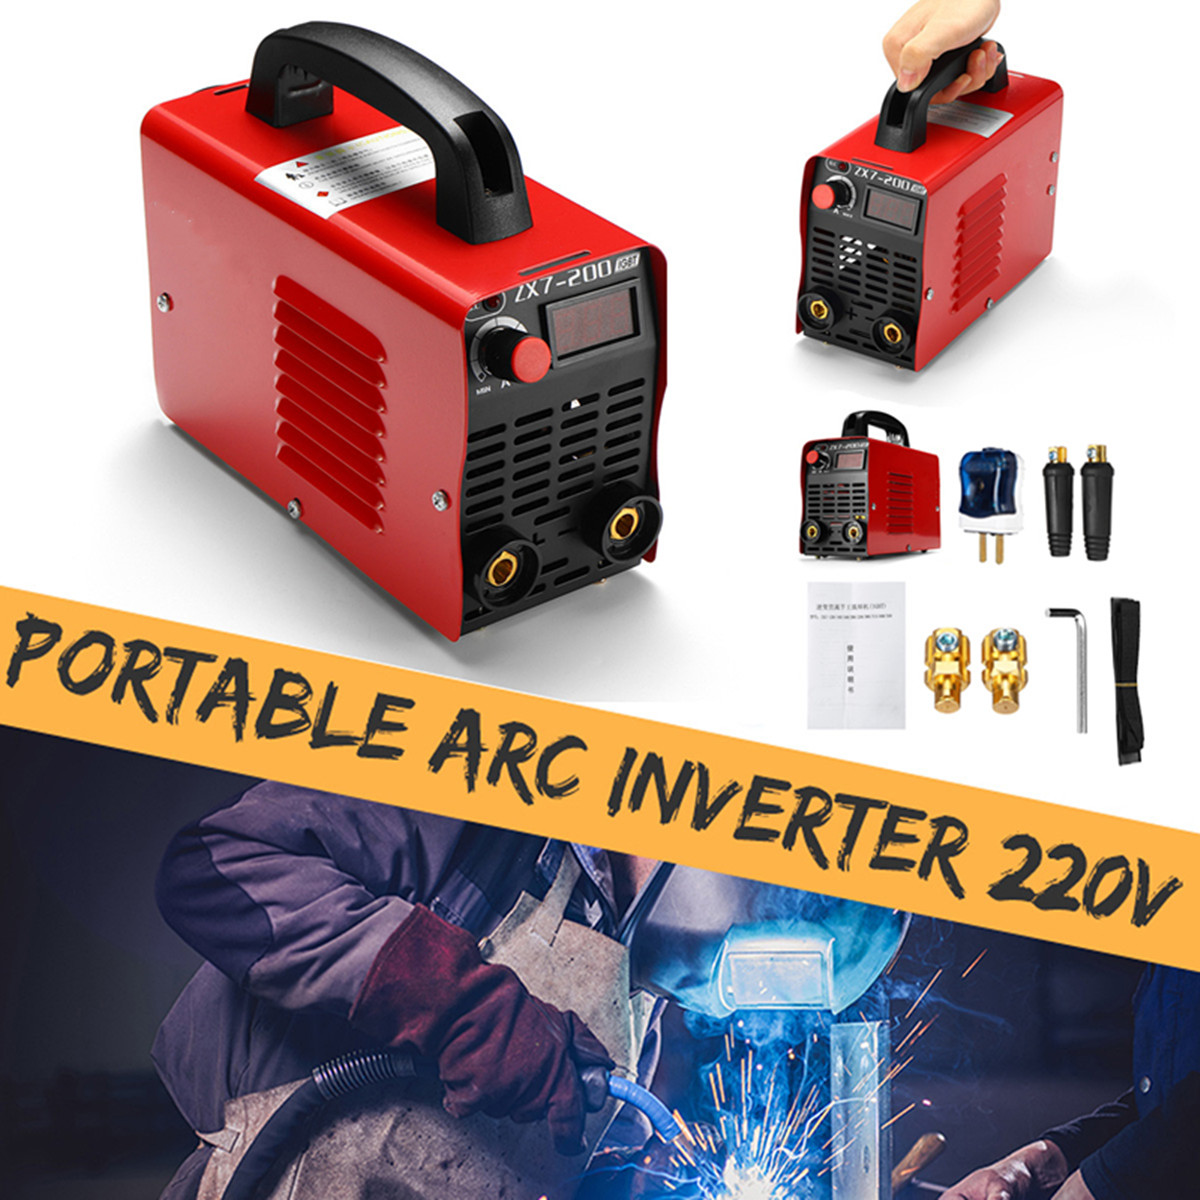 10-200A 4000W Handheld Mini MMA IGBT Inverter 220V Mini Electric ARC Welding Welder Inverter Machine Tool цена